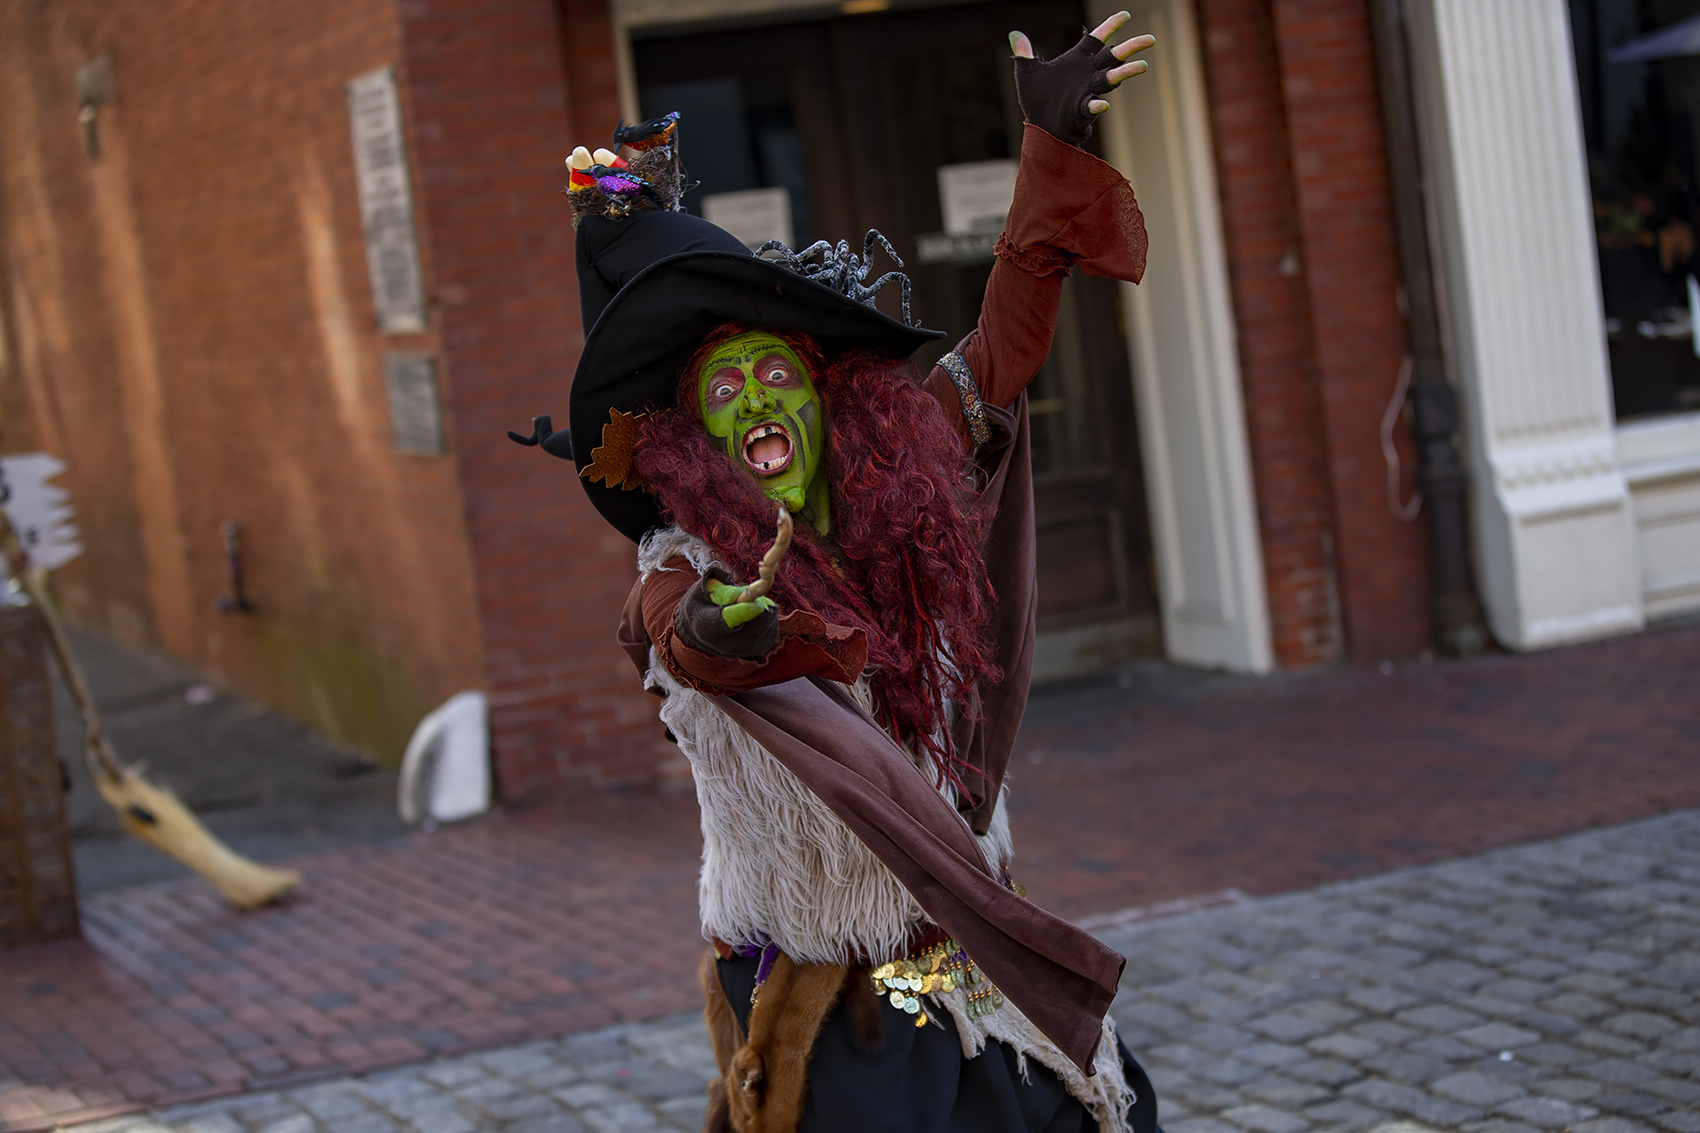 Street performer Borah Brewington Snaggletooth XIII, aka Brian Sims, casts a spell on Essex Street. (Jesse Costa/WBUR)